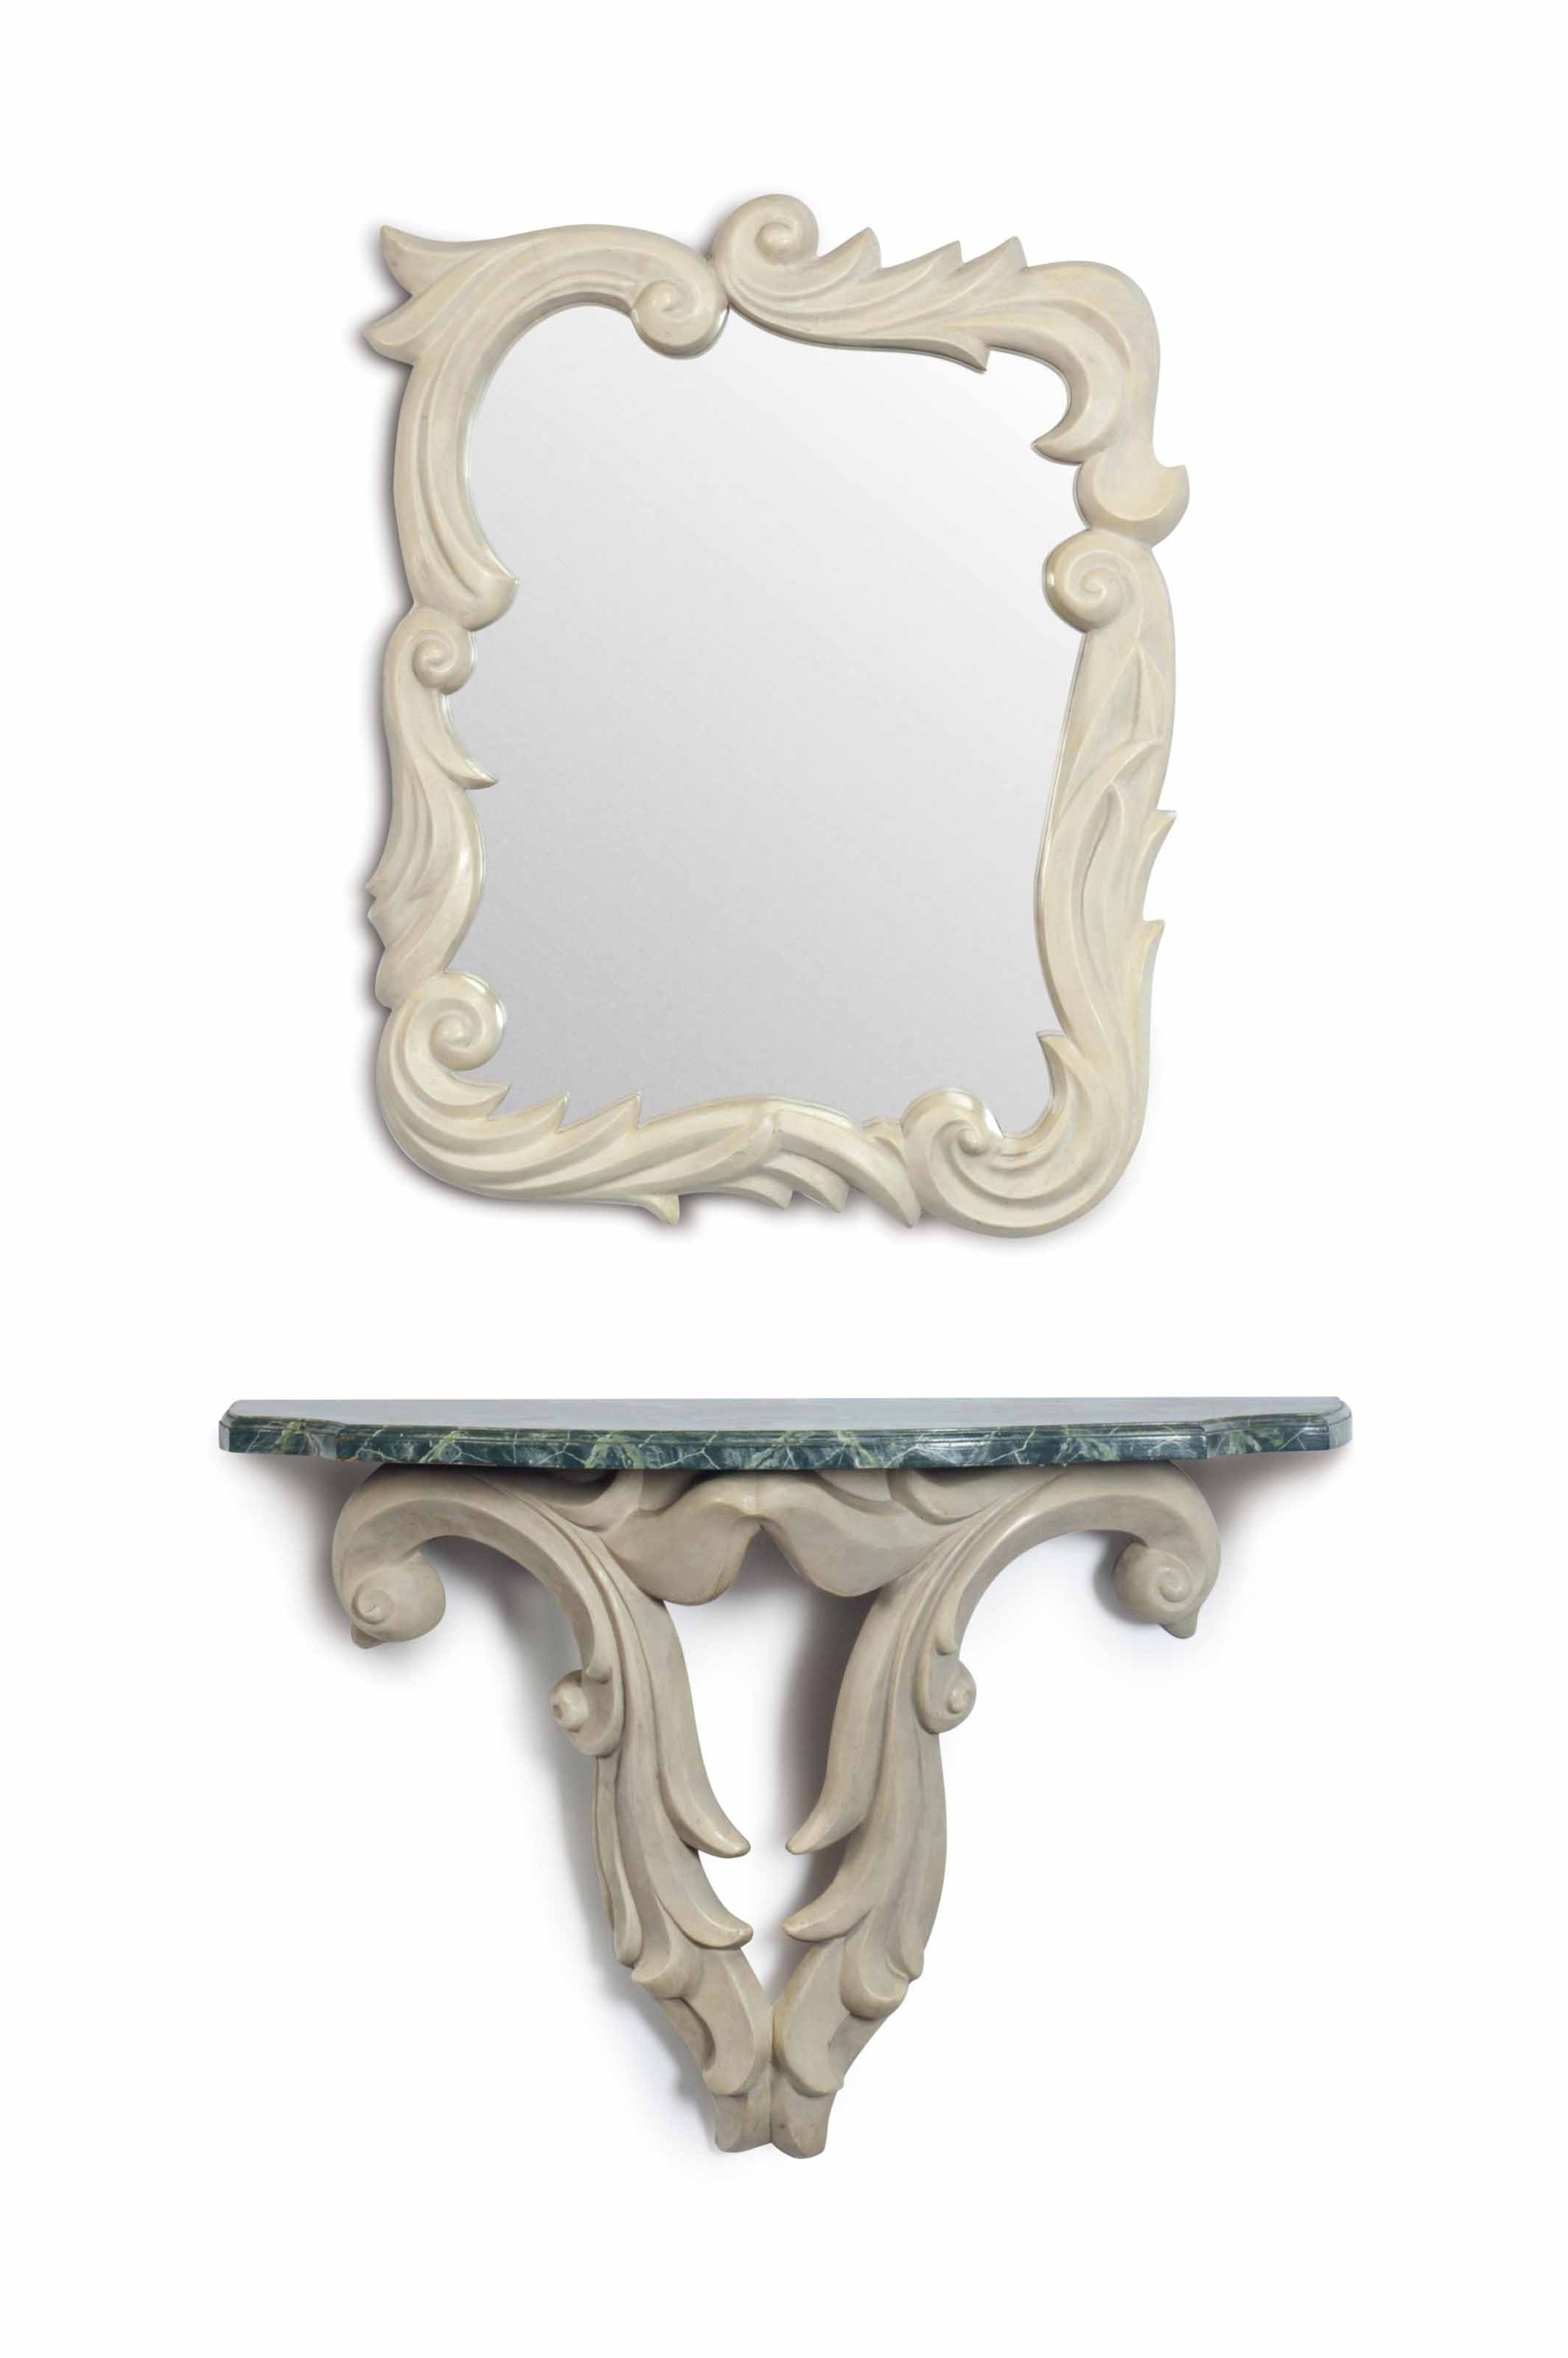 A FRENCH PLASTER AND FAUX MARBLE-TOP CONSOLE AND MIRROR,